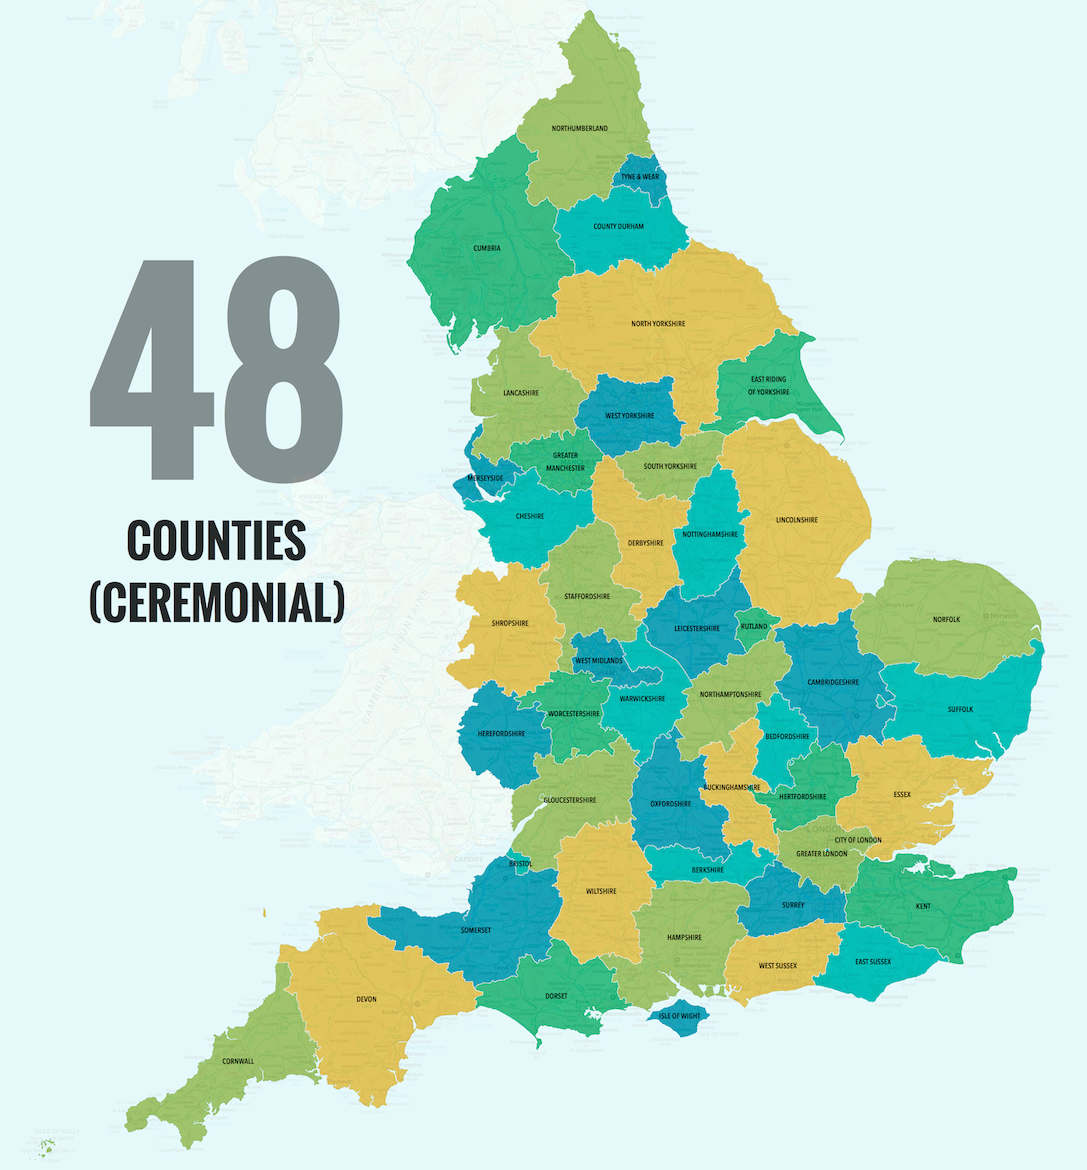 40 Ways to Carve Up England  Big Think